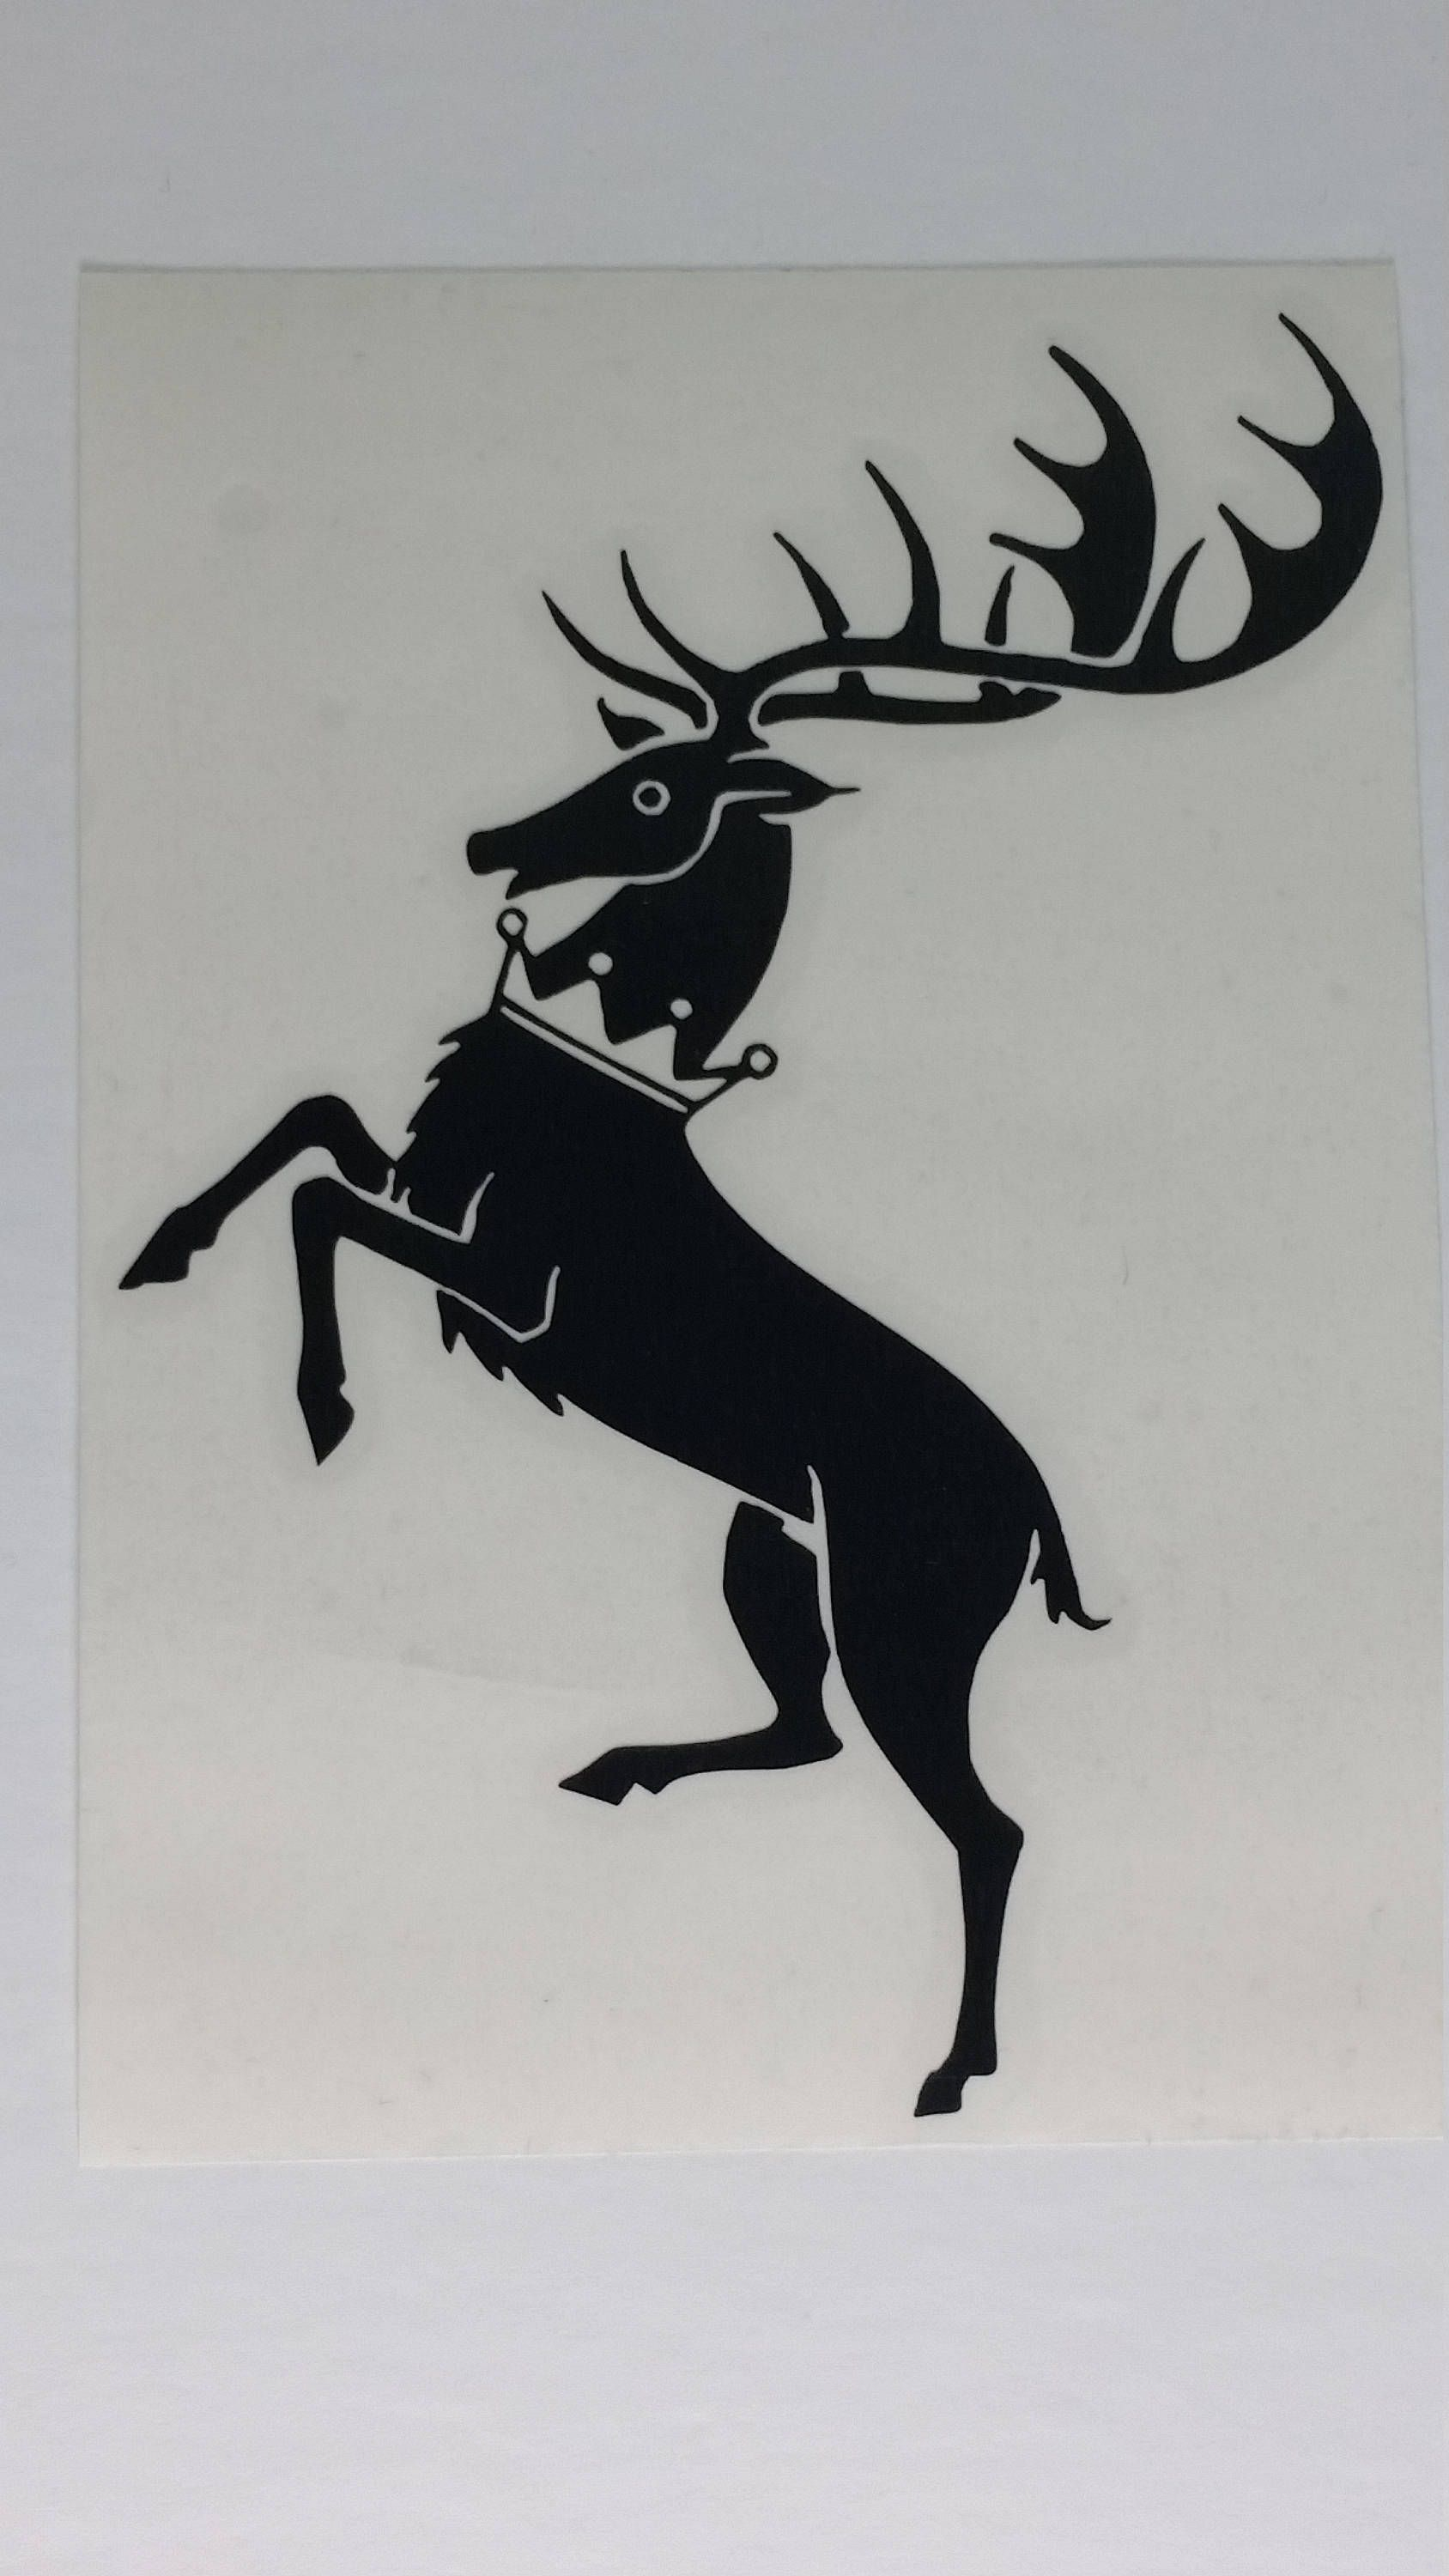 Game of Thrones House Baratheon Sigil Vinyl Decal by